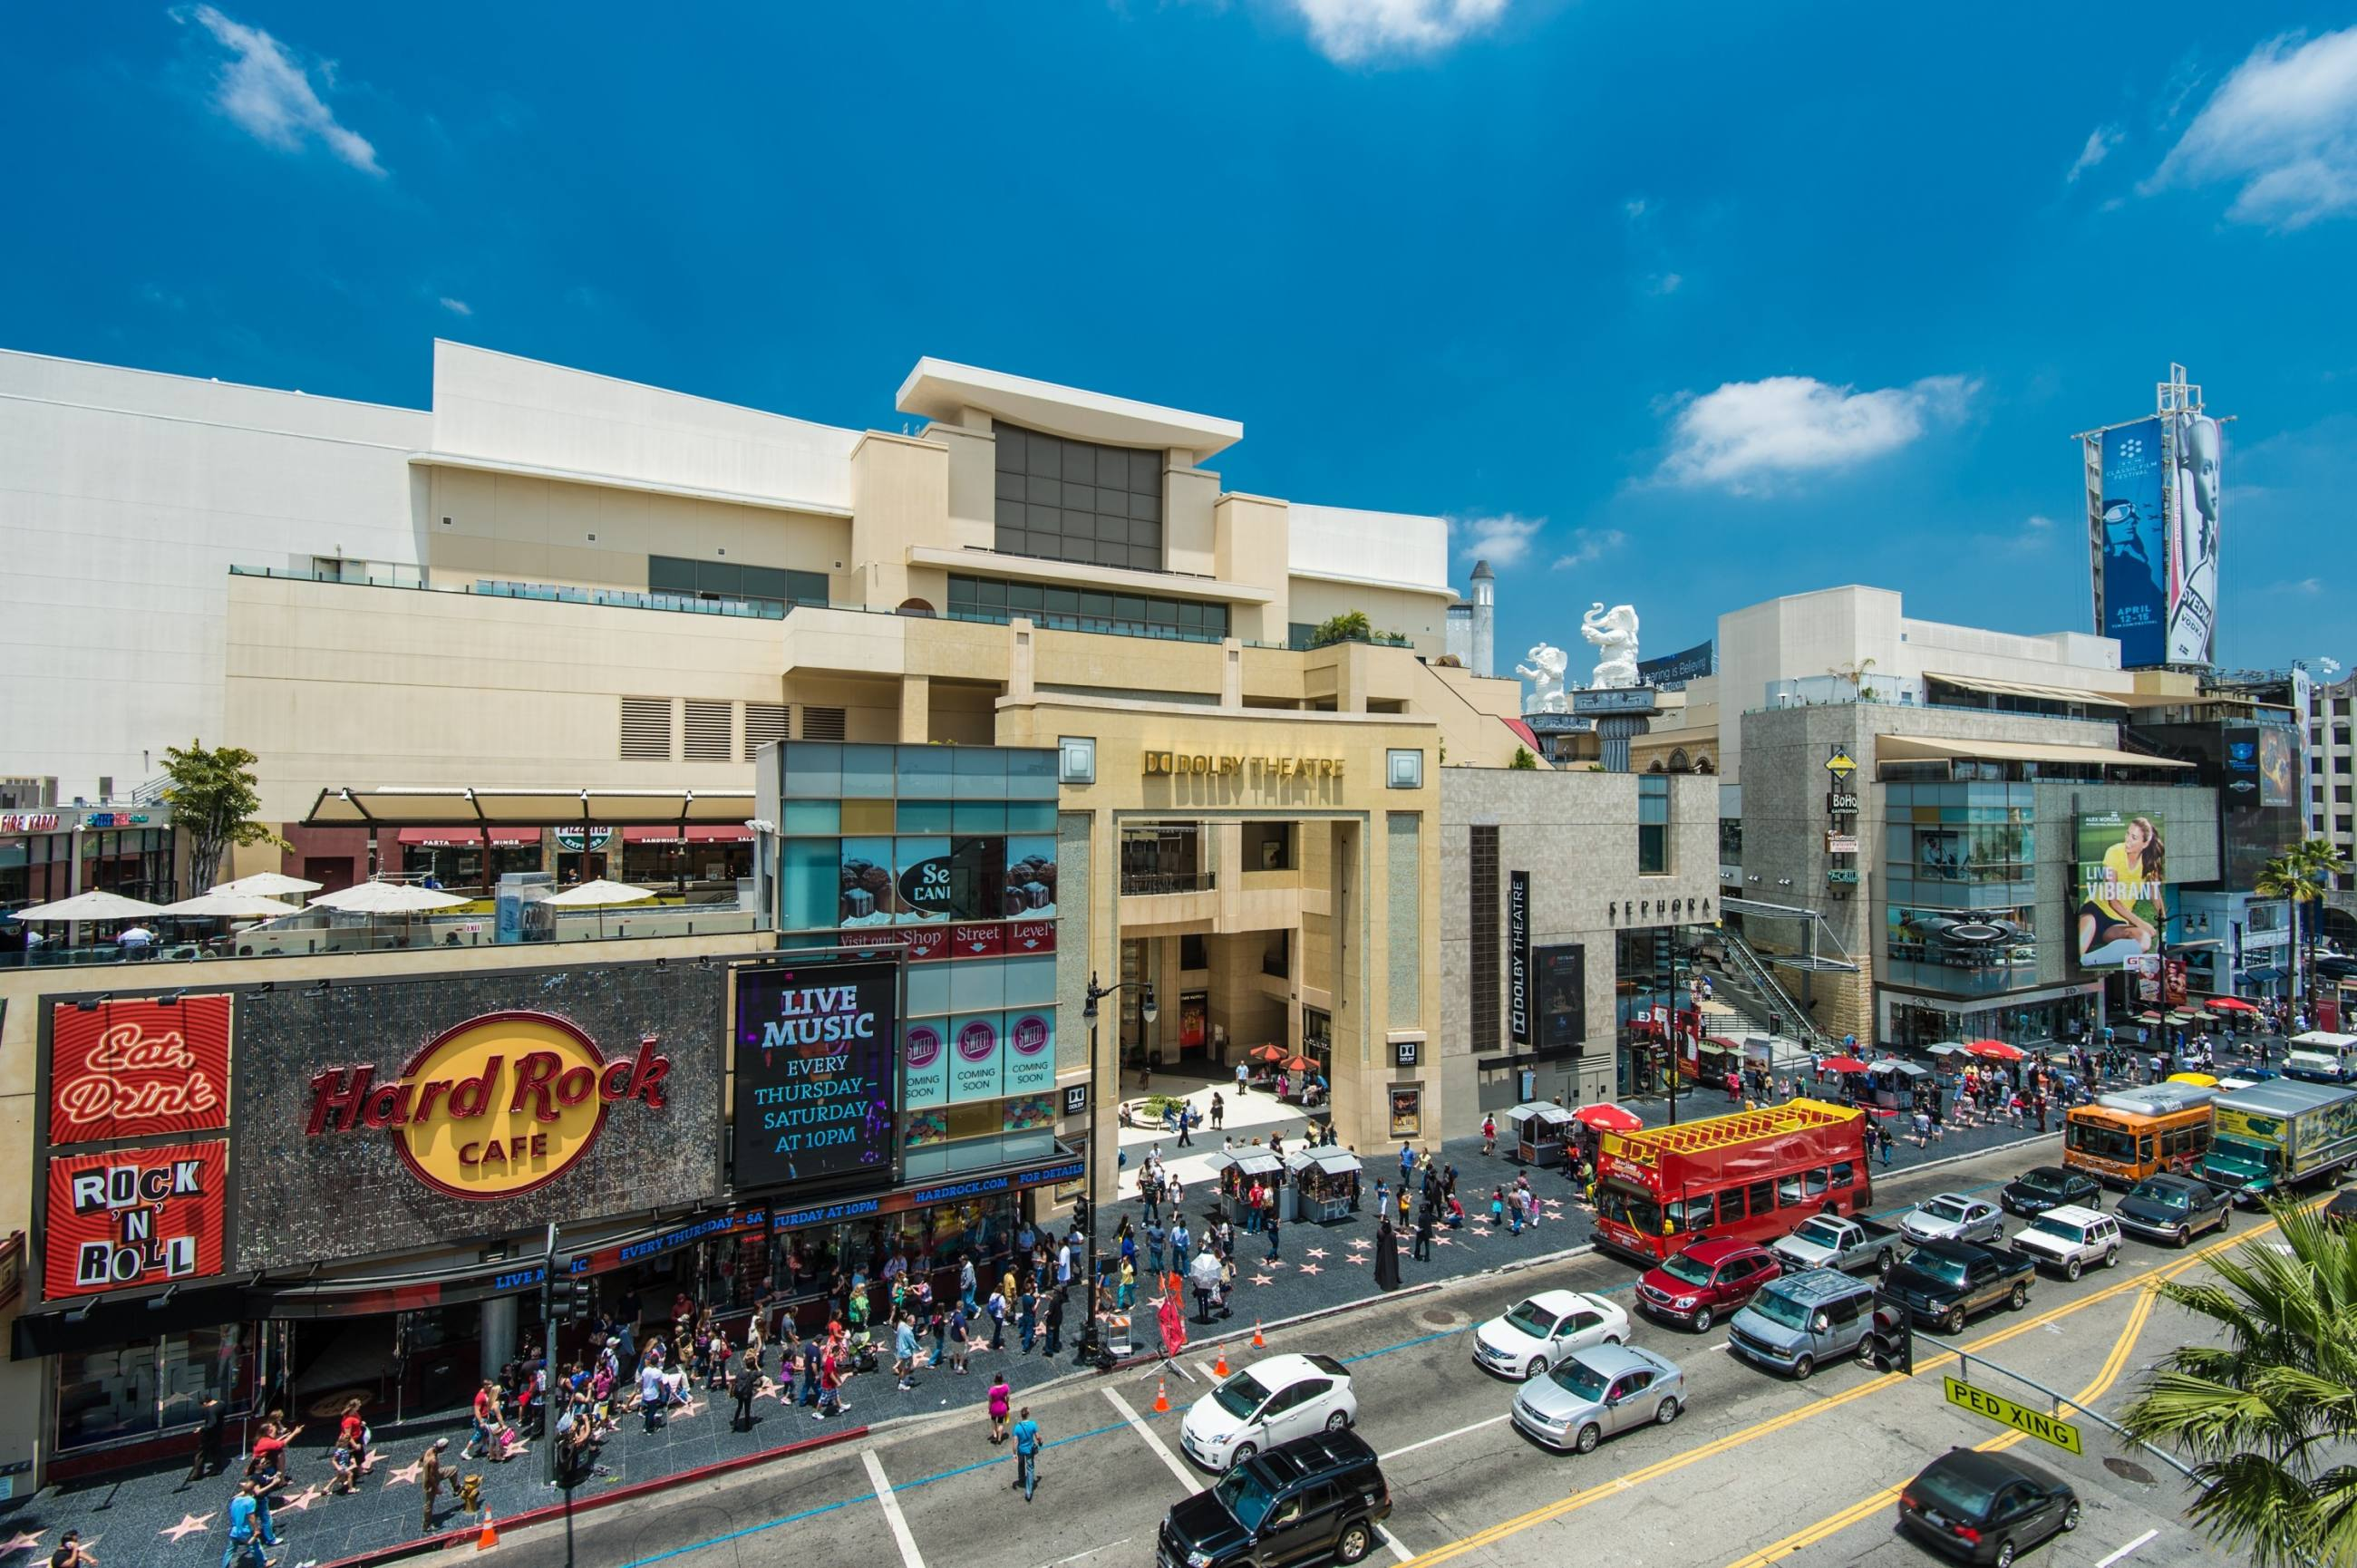 Hollywood & Highland from Hollywood Blvd/Walk of Fame